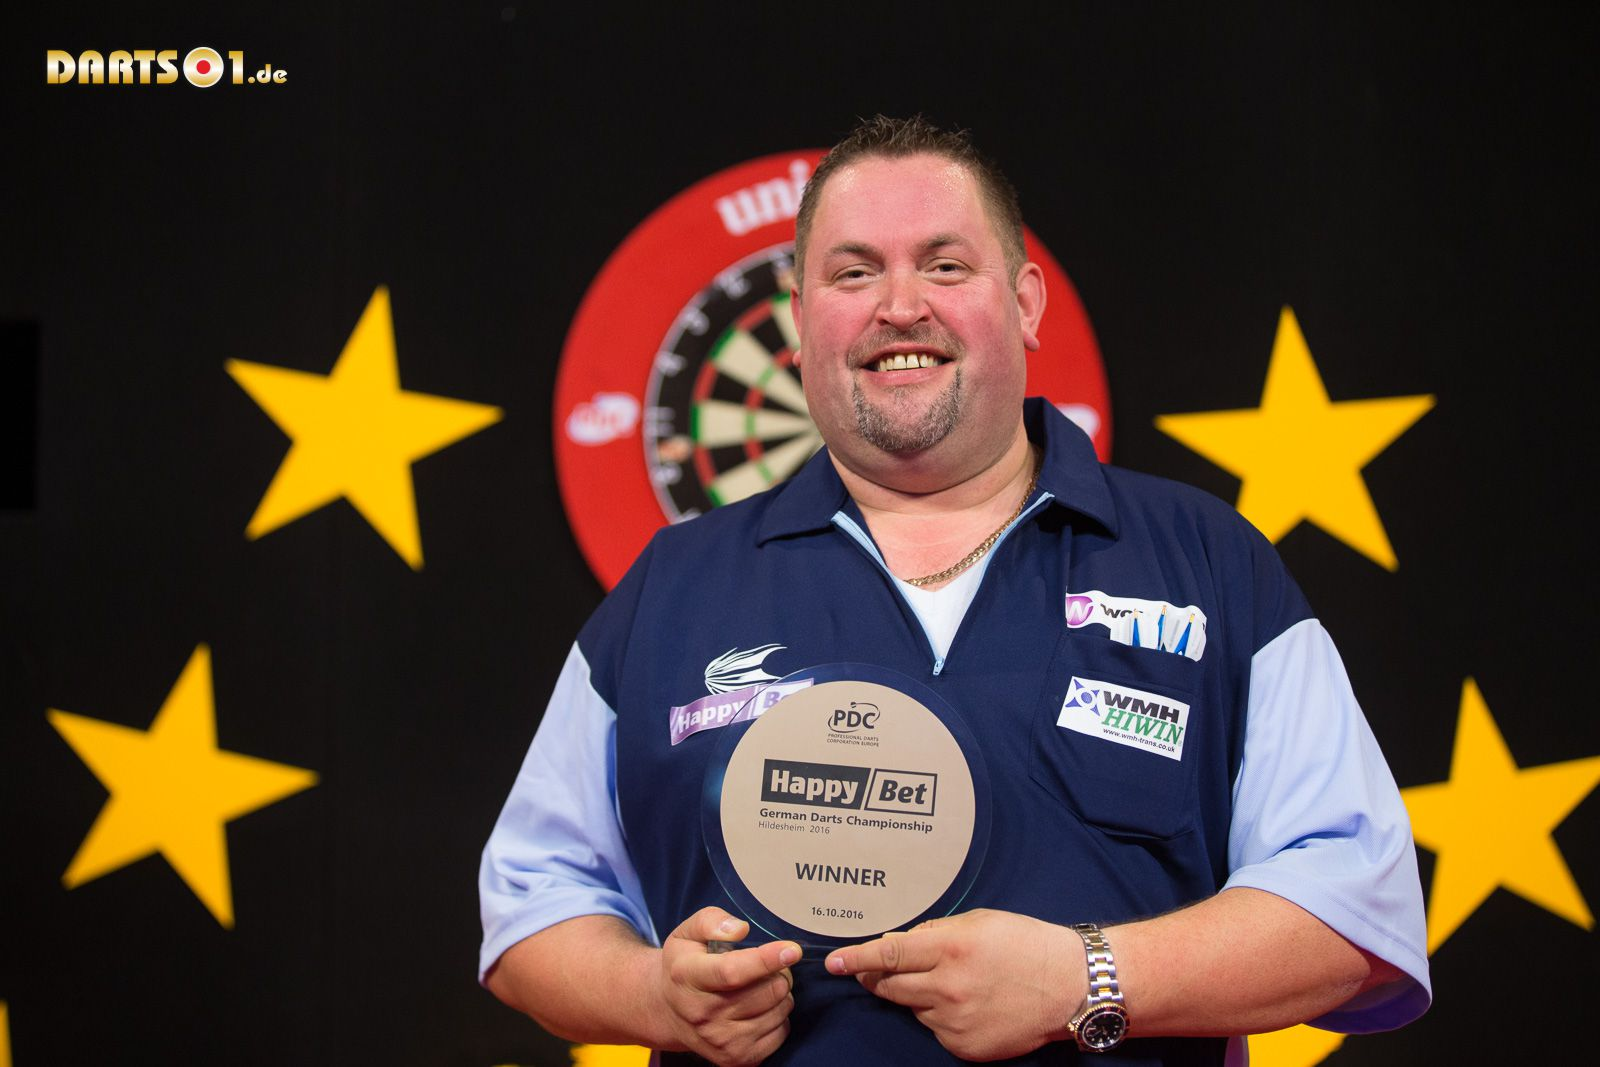 german darts championship